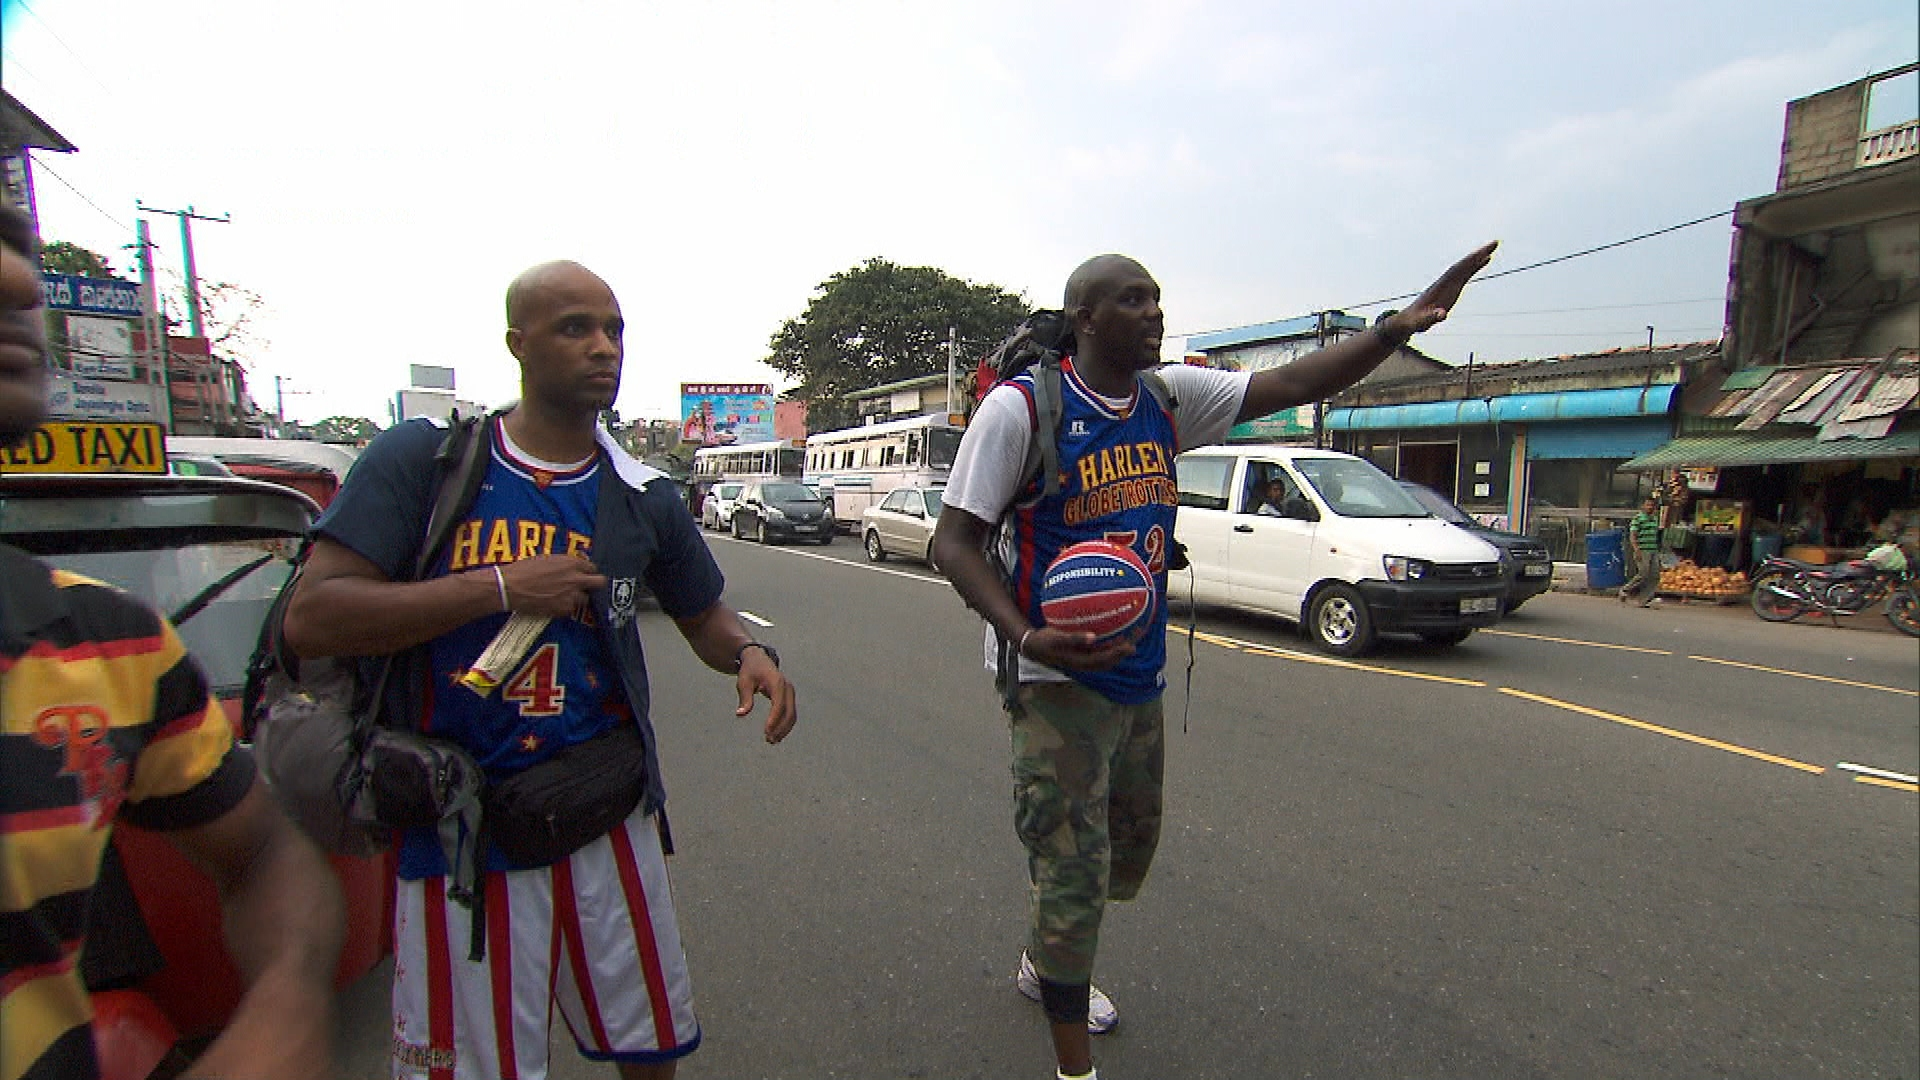 Harlem Globetrotters in Season 24 Episode 5